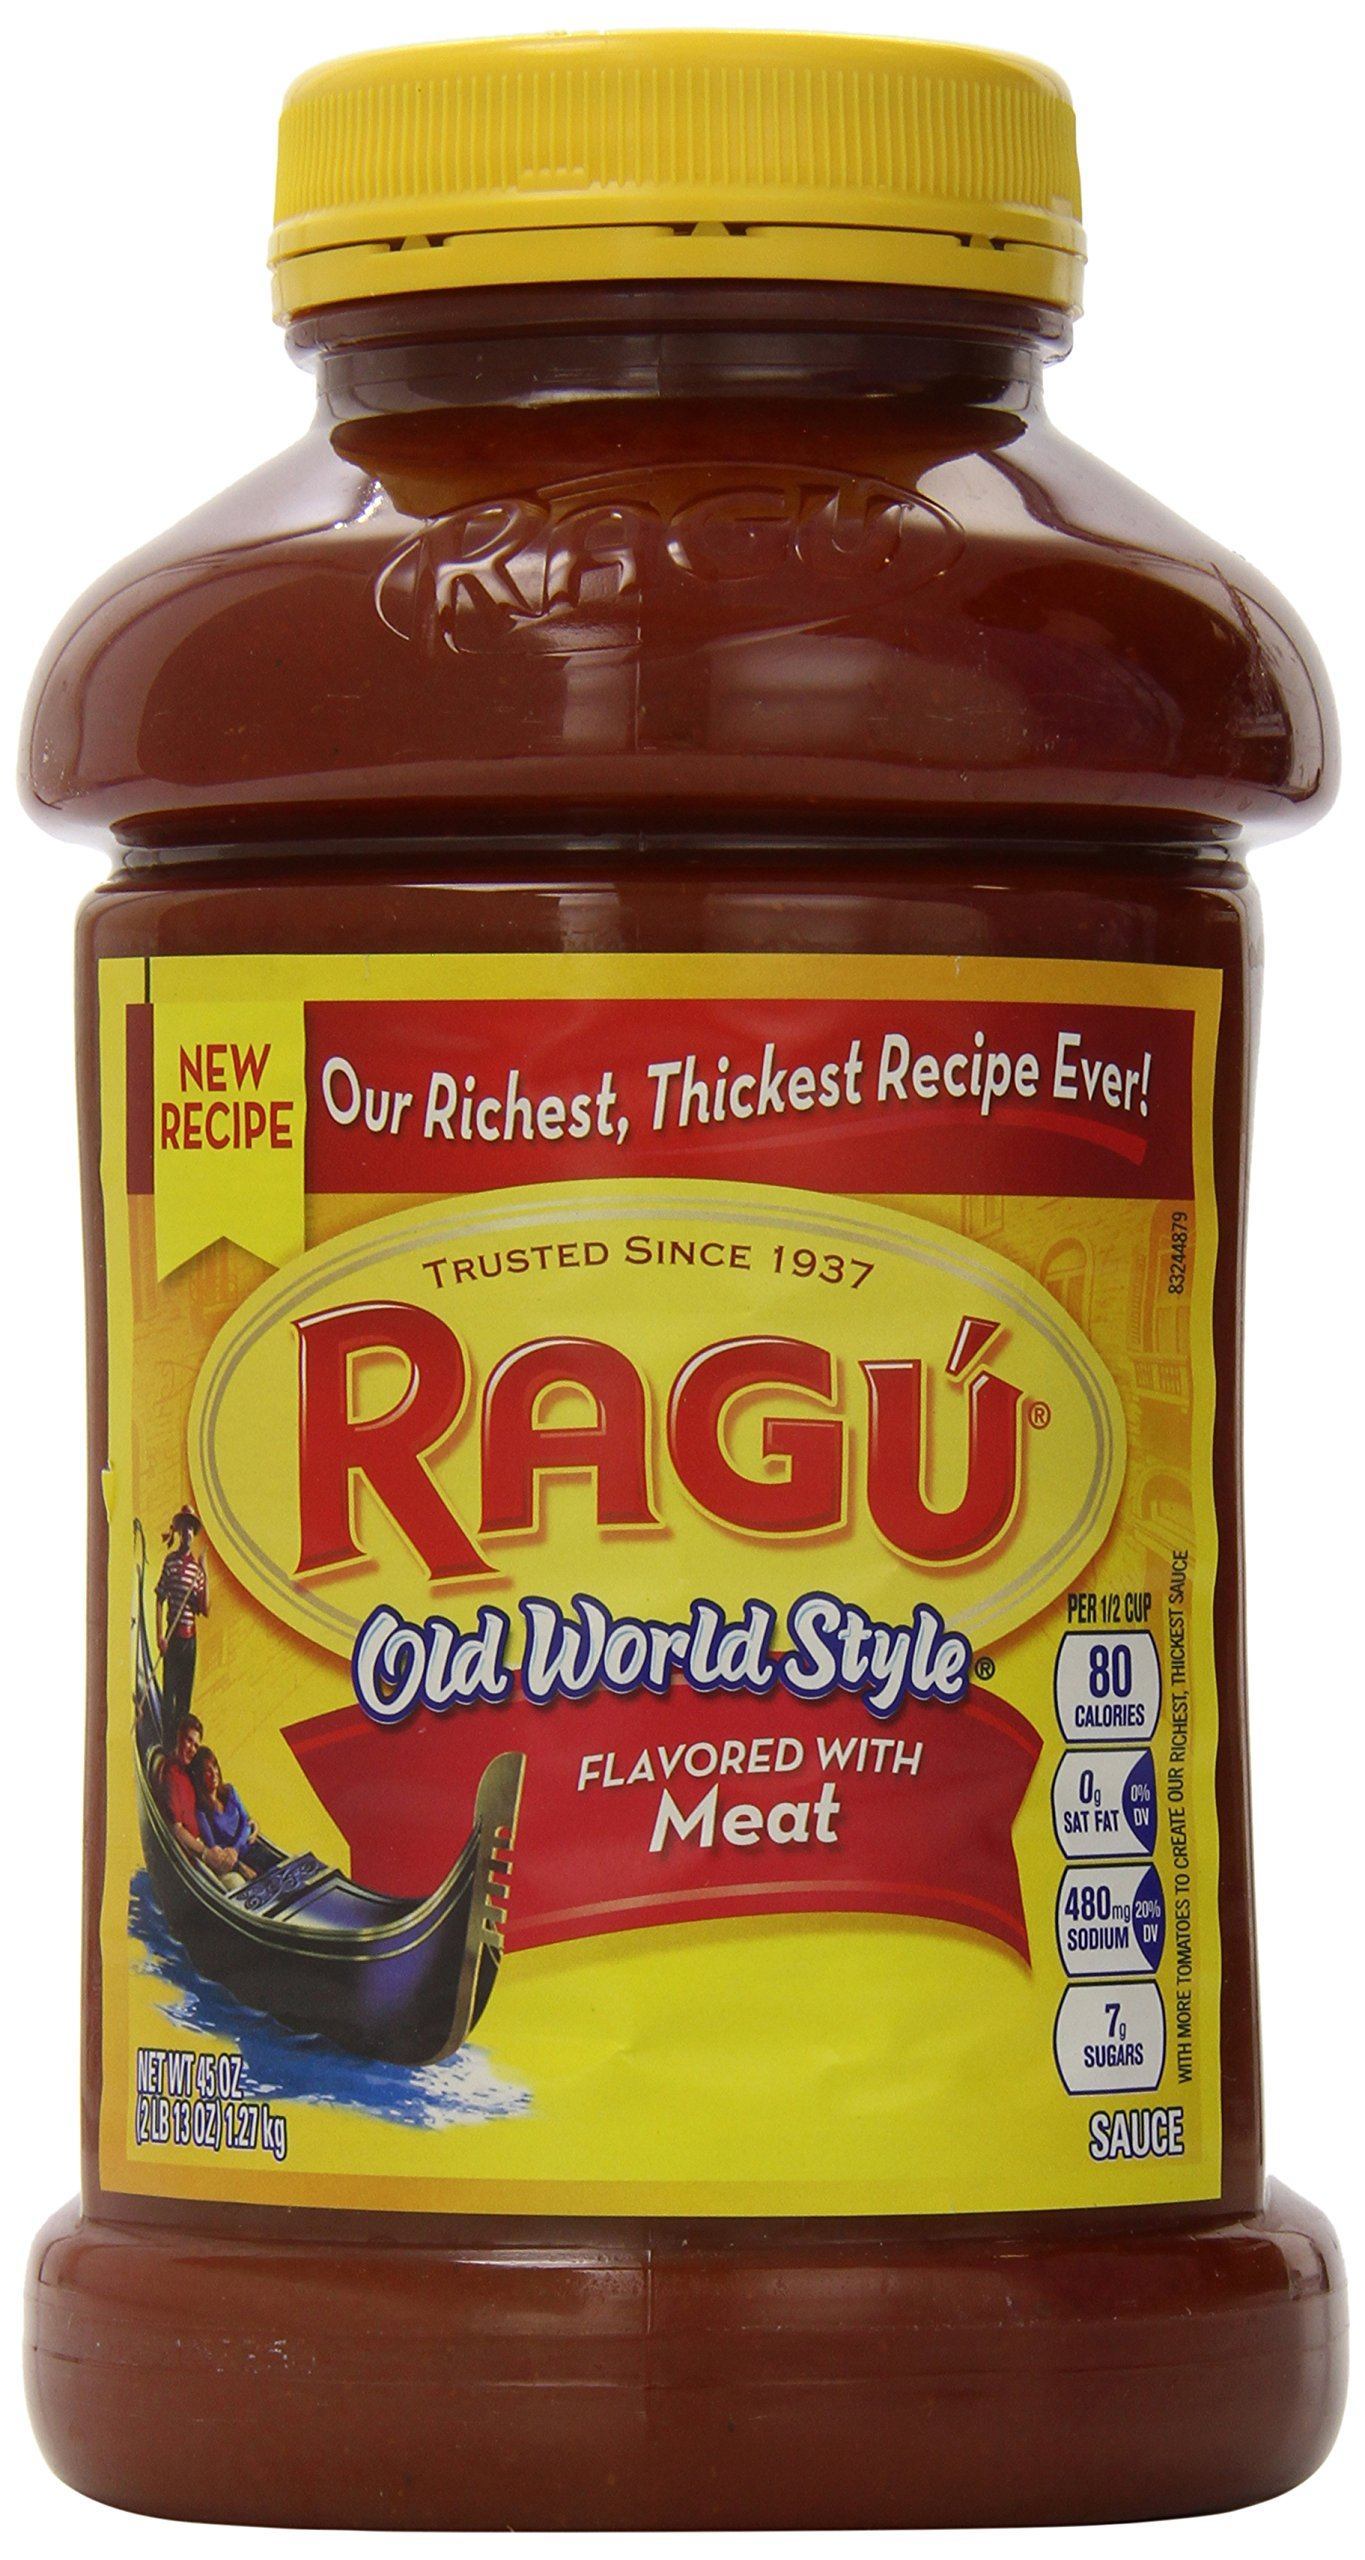 Ragu Pasta Sauce, Old World Style, Meat 45 Ounce, 45-Ounce Jars (Pack of 4) by Ragu